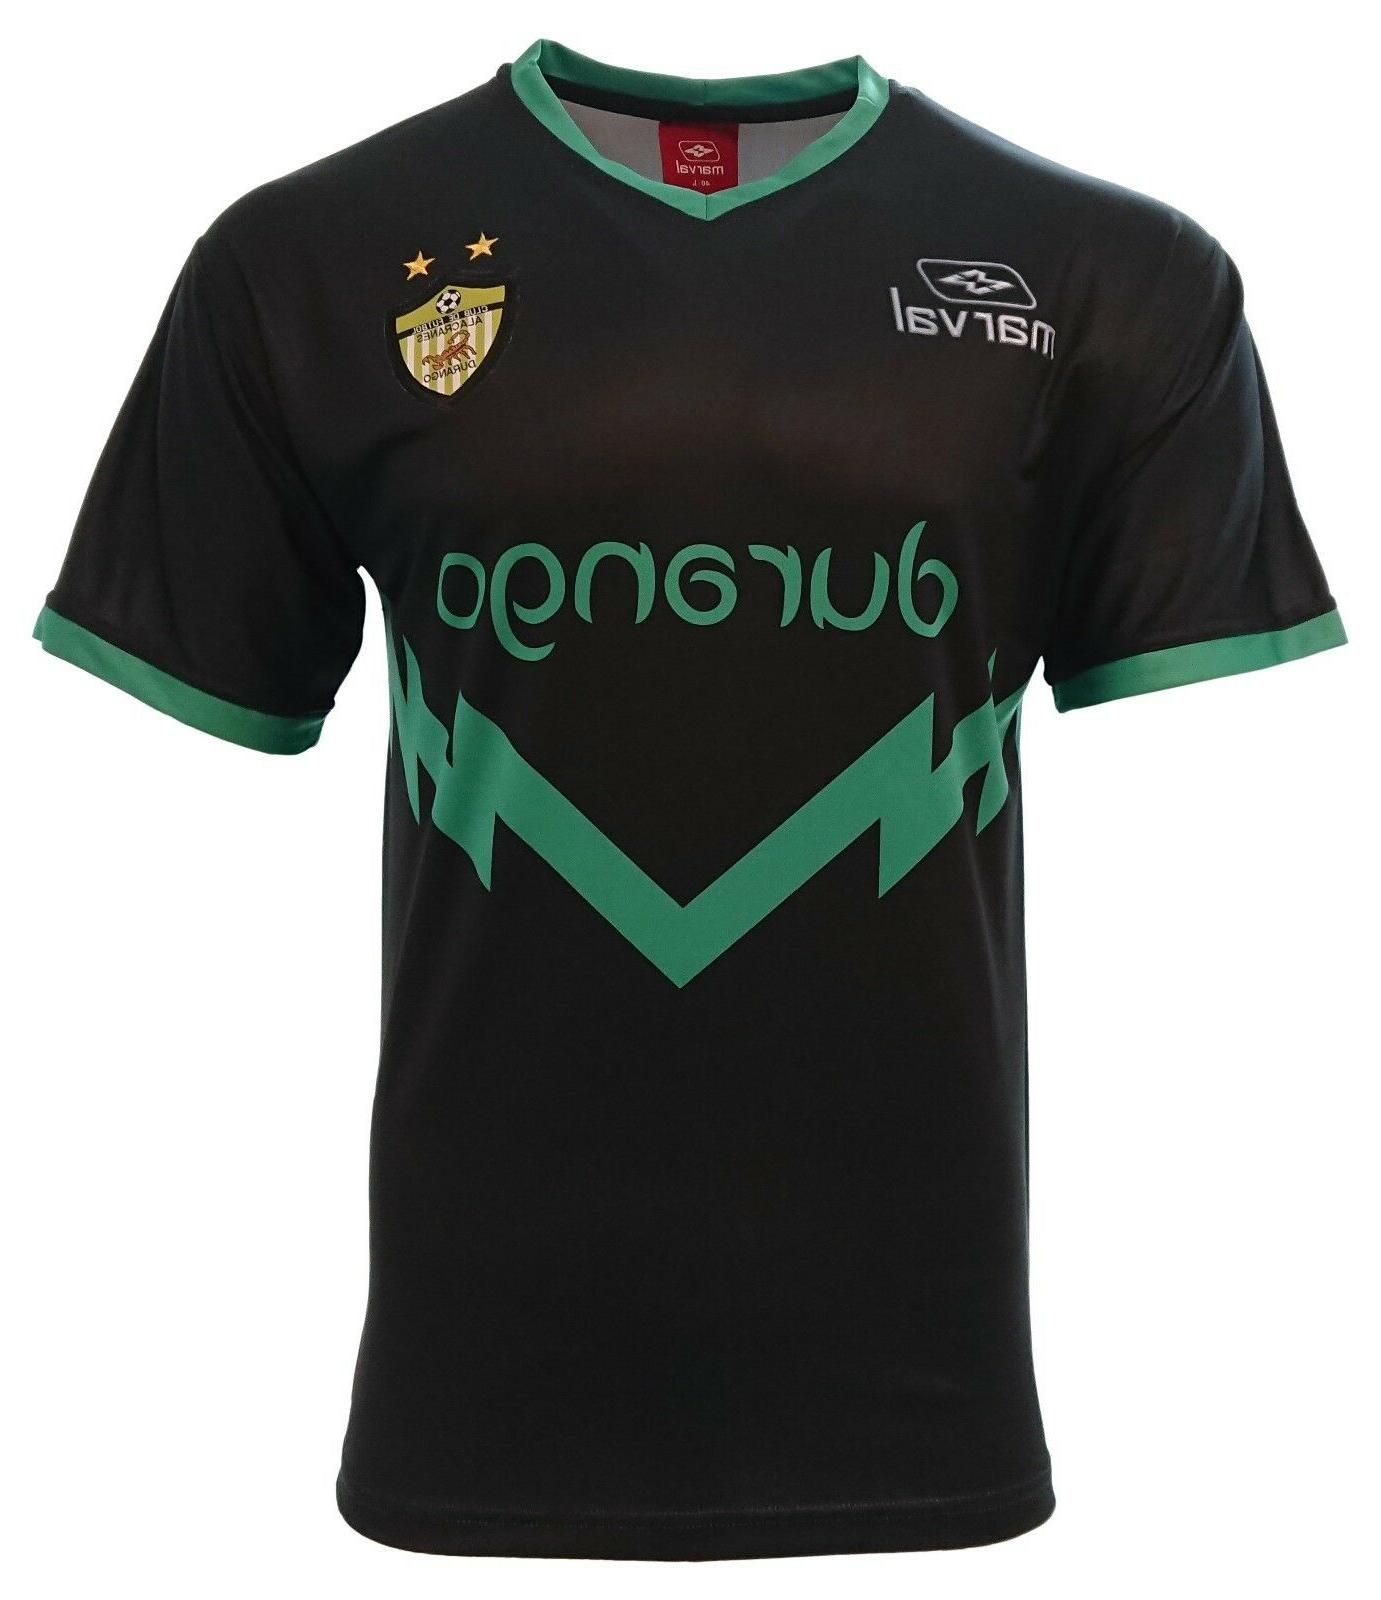 durango adult men soccer jersey black by